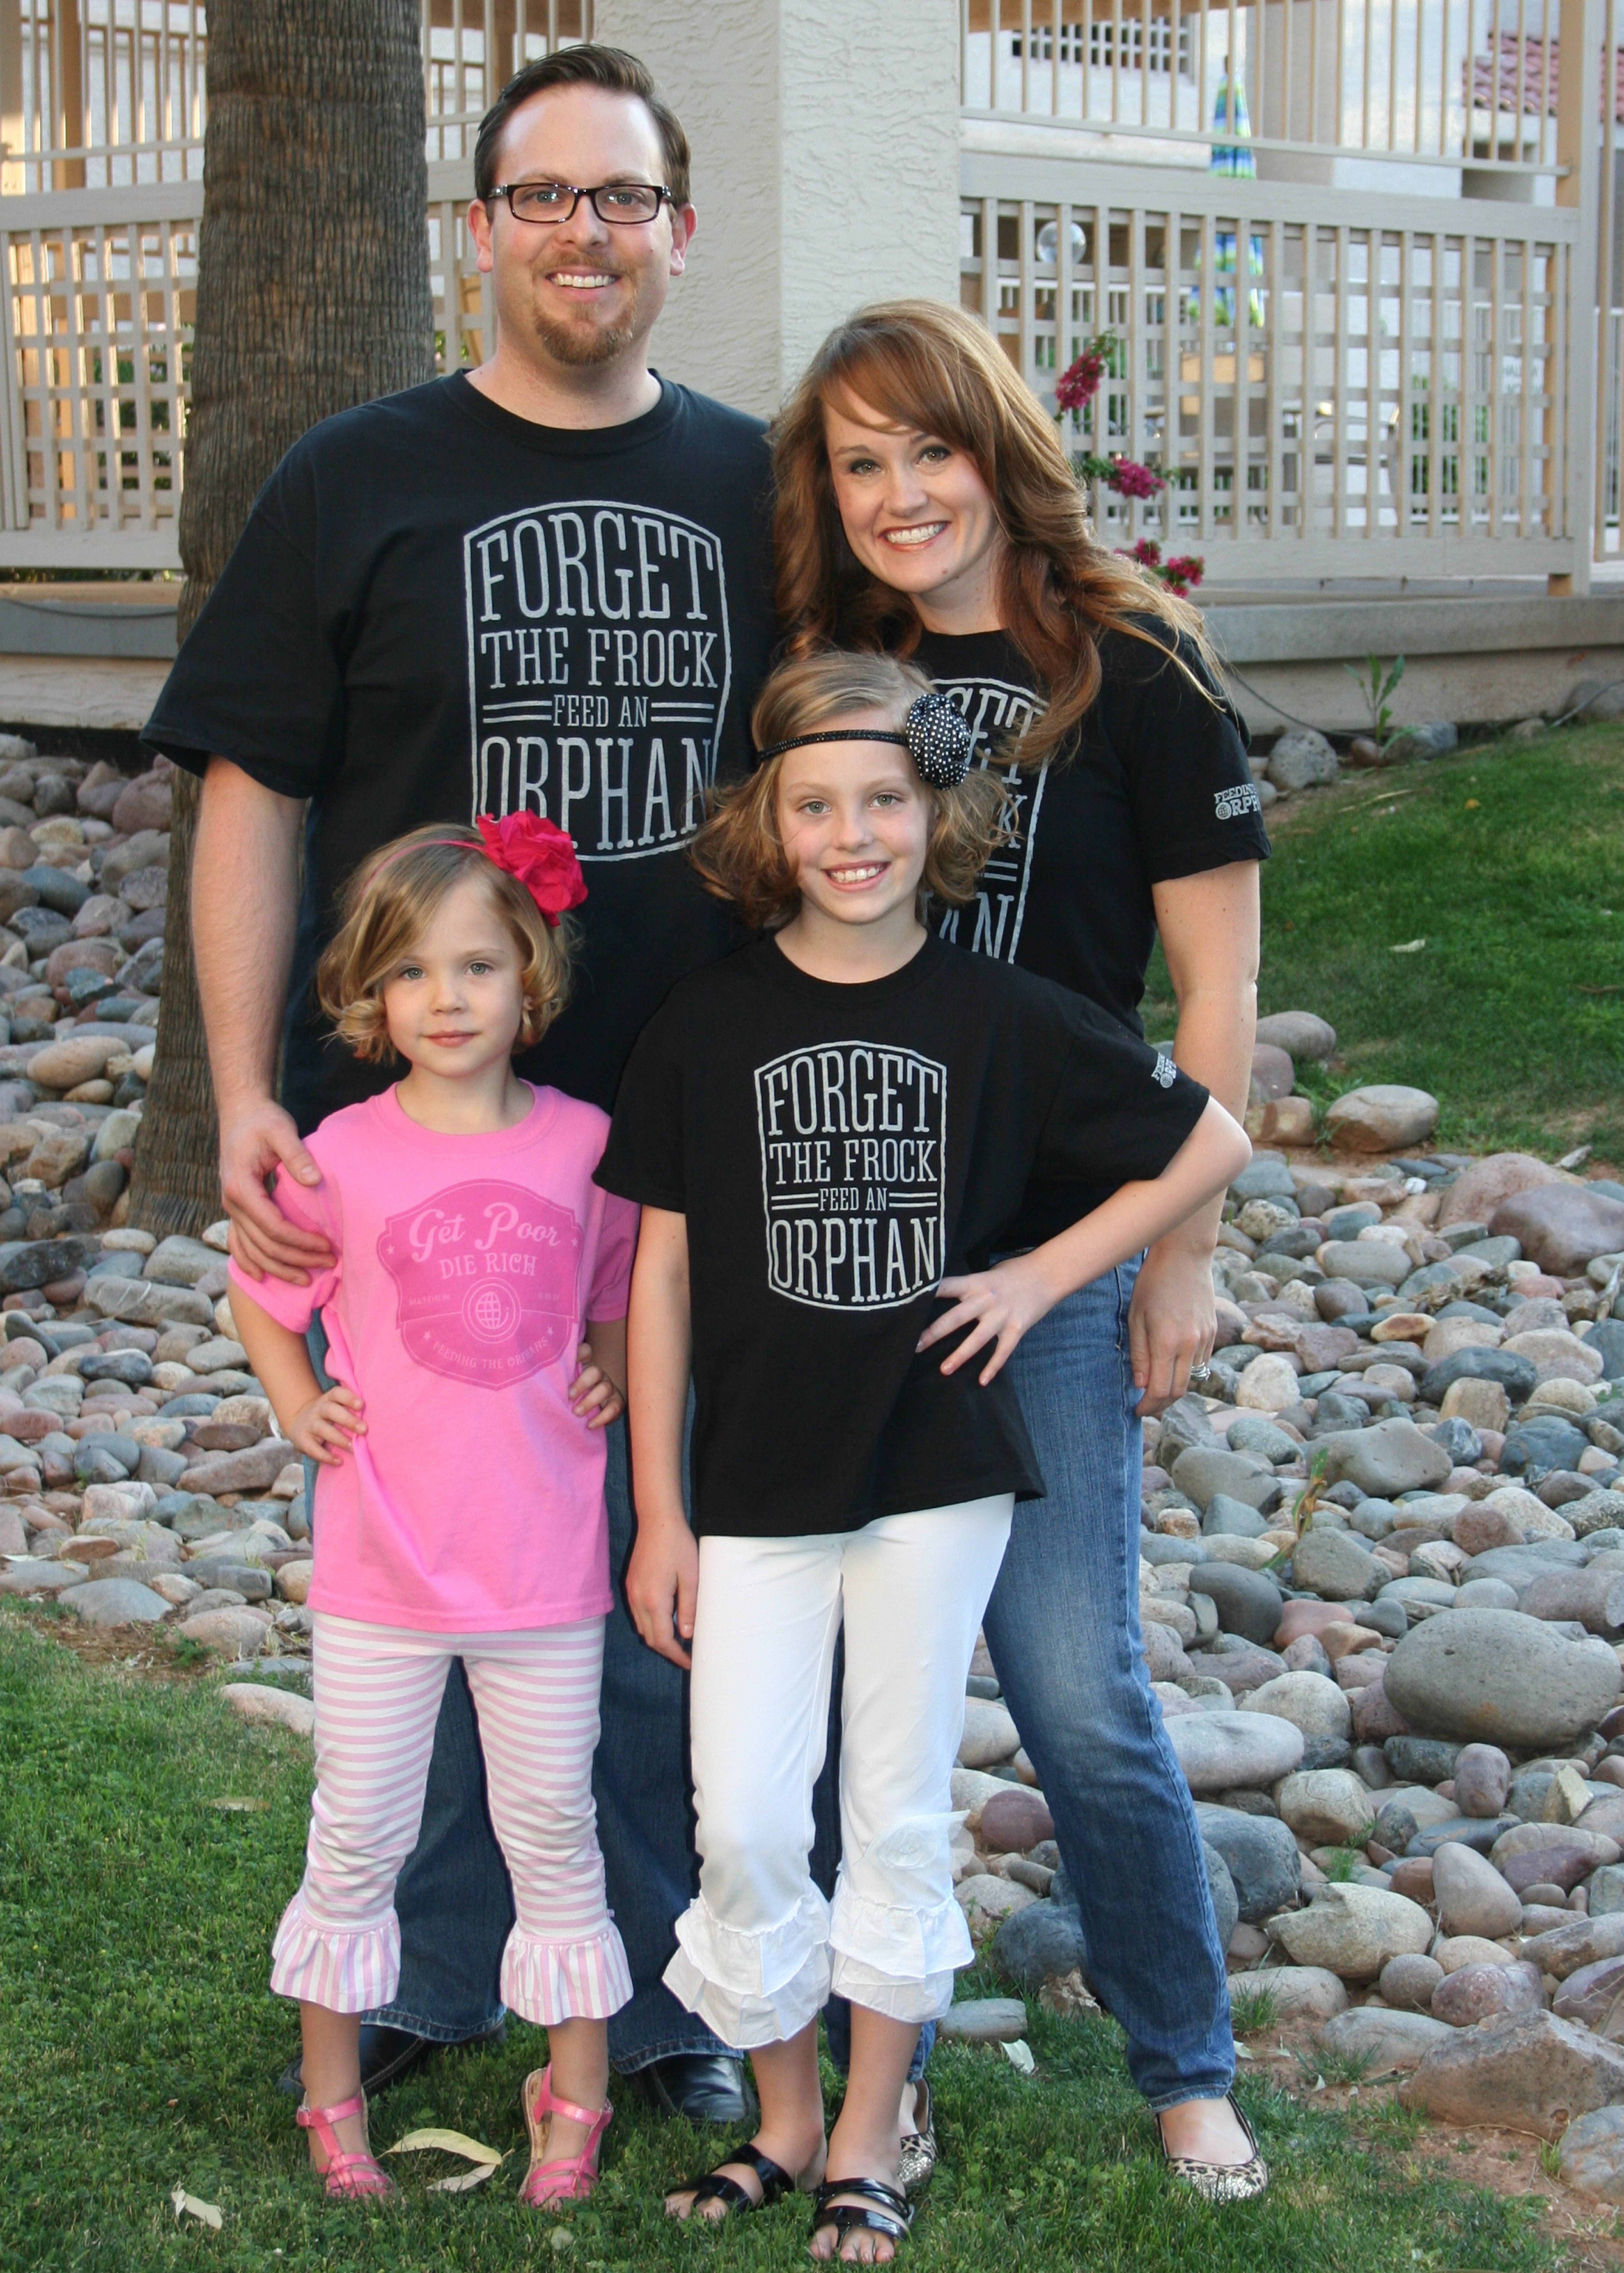 Emily Fox, shown with her family at left, created Forget the Frock, an organization that promotes giving on behalf of orphans and other underprivileged individuals. At right is the Sexton family, supporters of movement.